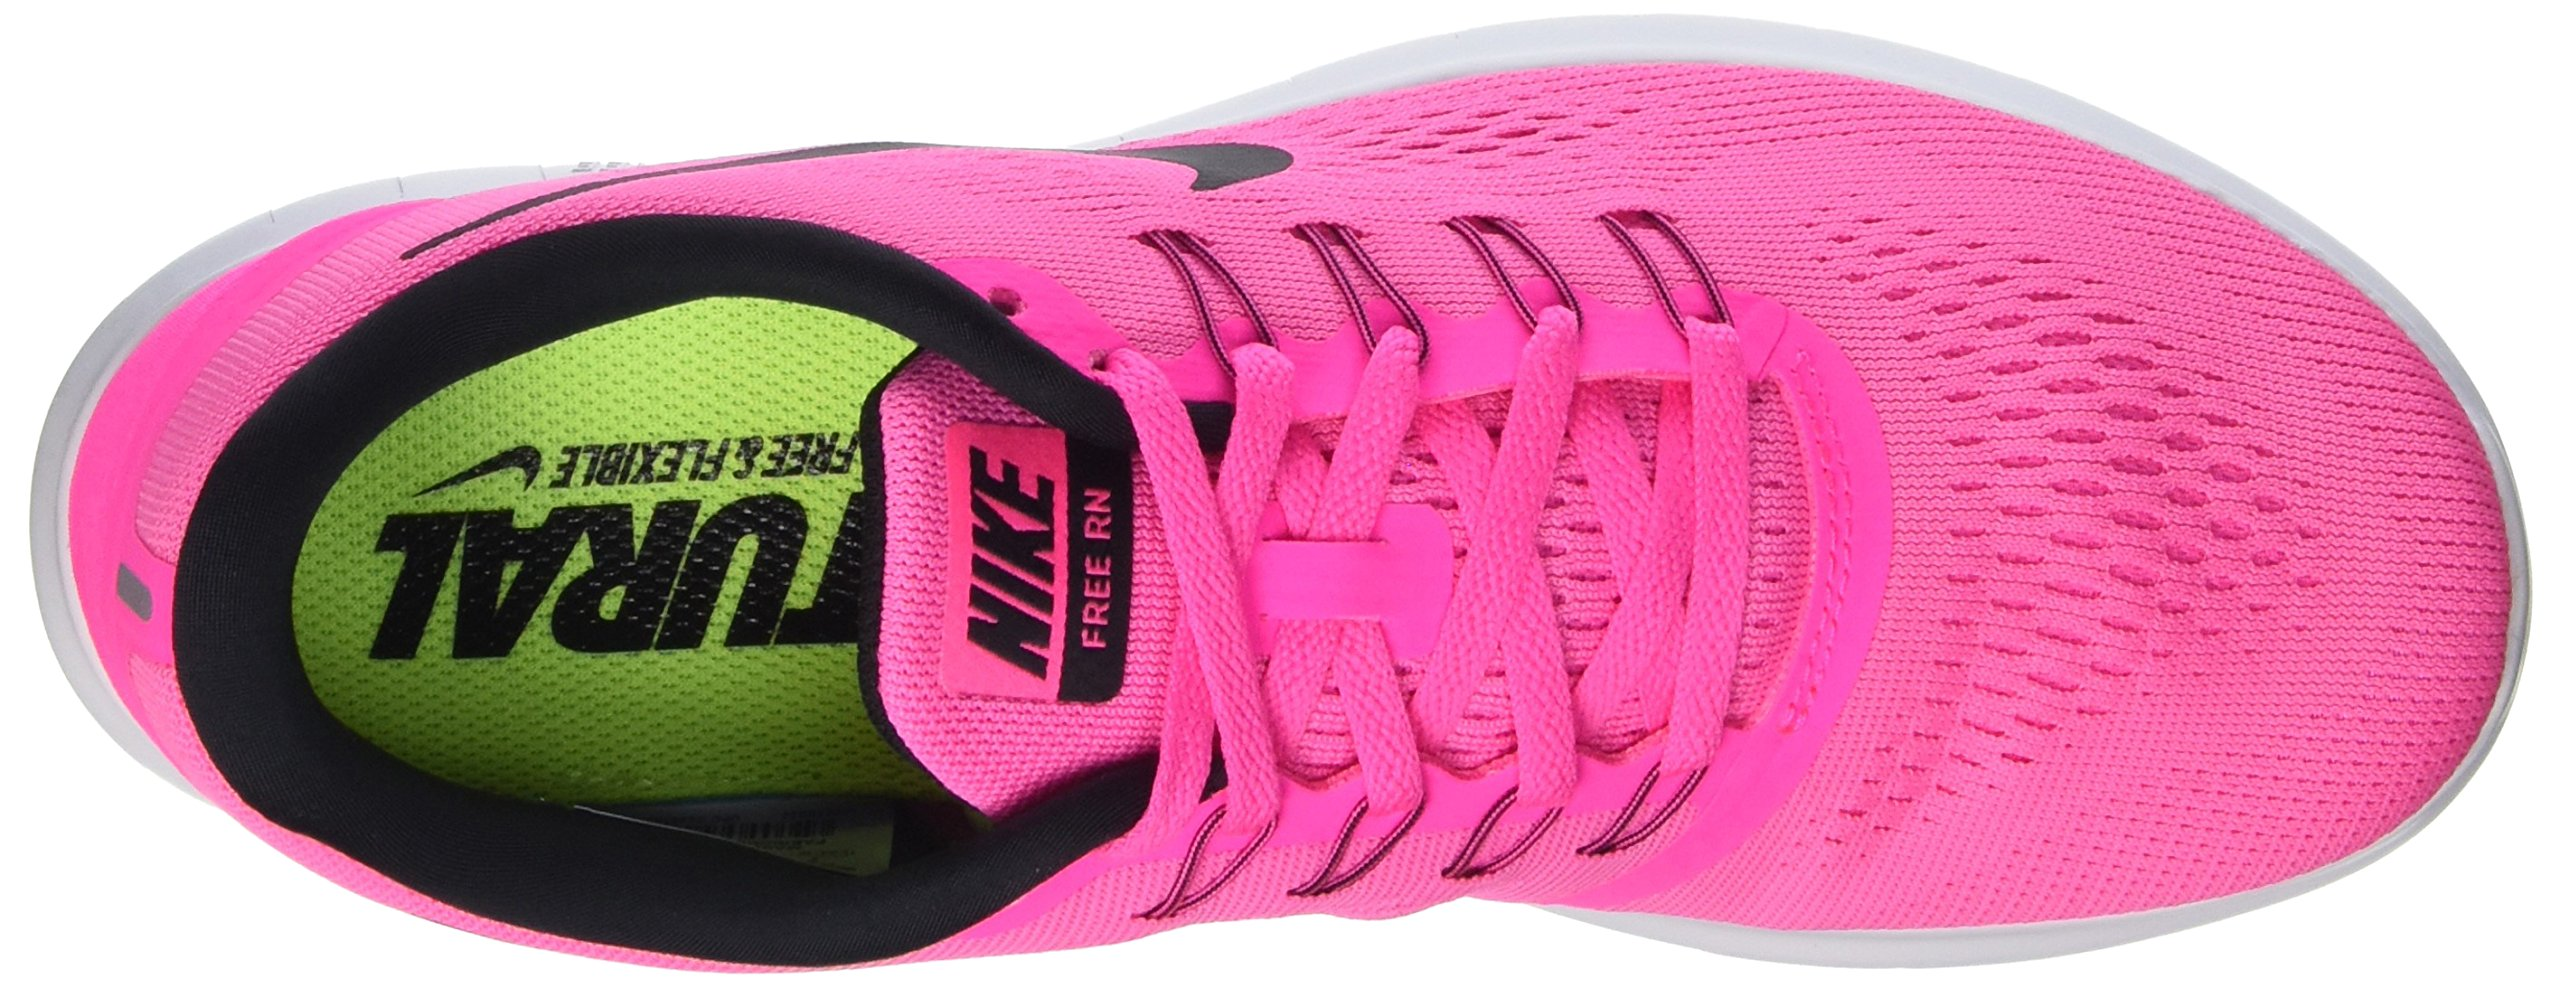 Nike Womens Free RN Running Shoes Pink Blast/Fire Pink/White/Black 5 B(M) US by Nike (Image #6)